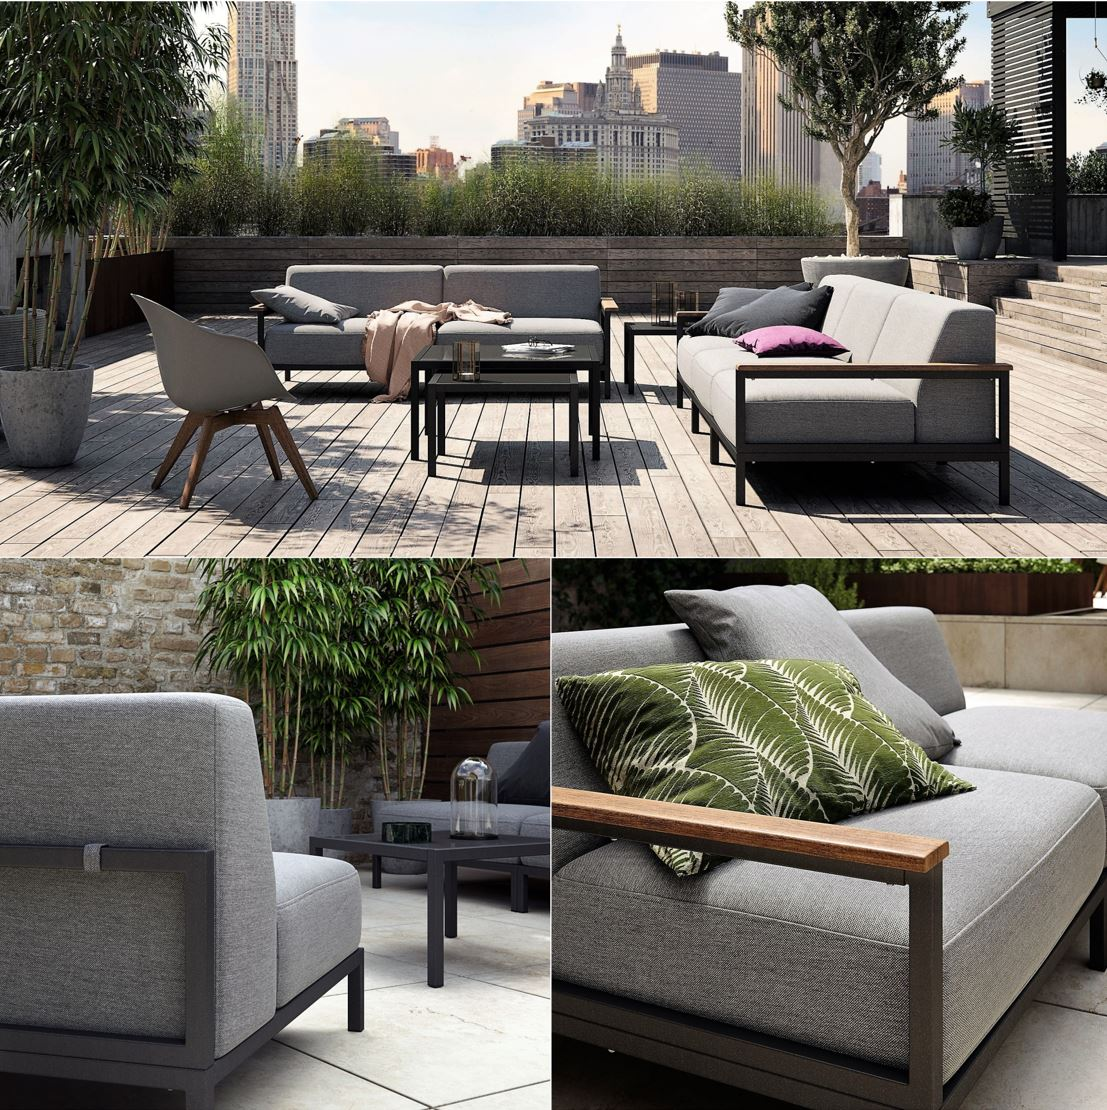 boconcept experience rome outdoor lounge 8k Insta - ROME - Outdoor Lounging